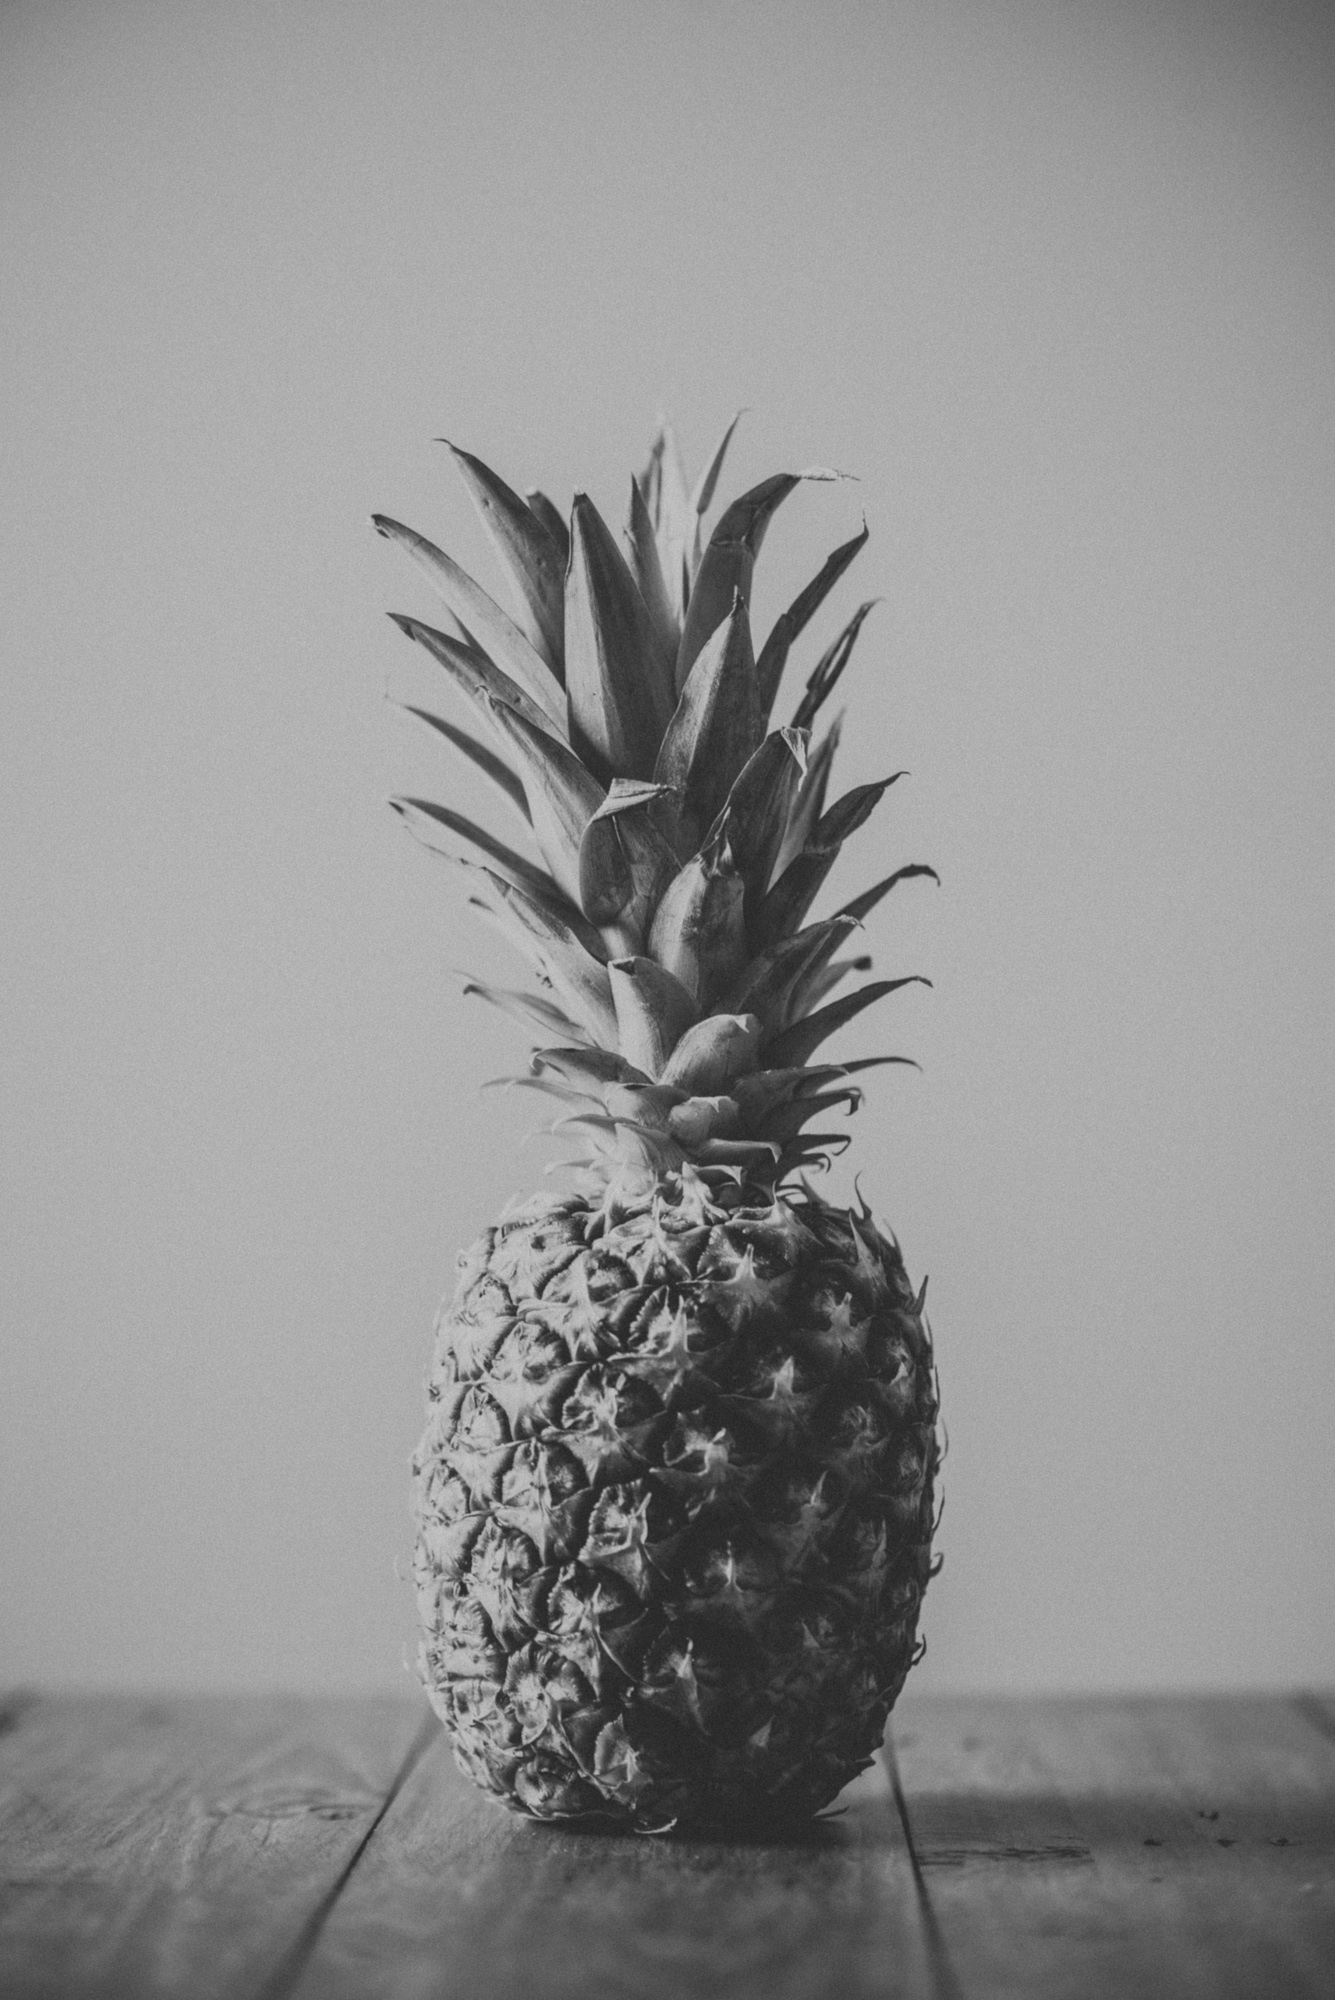 sabrinamayphotography.com,pineapple,blog-5204.jpg